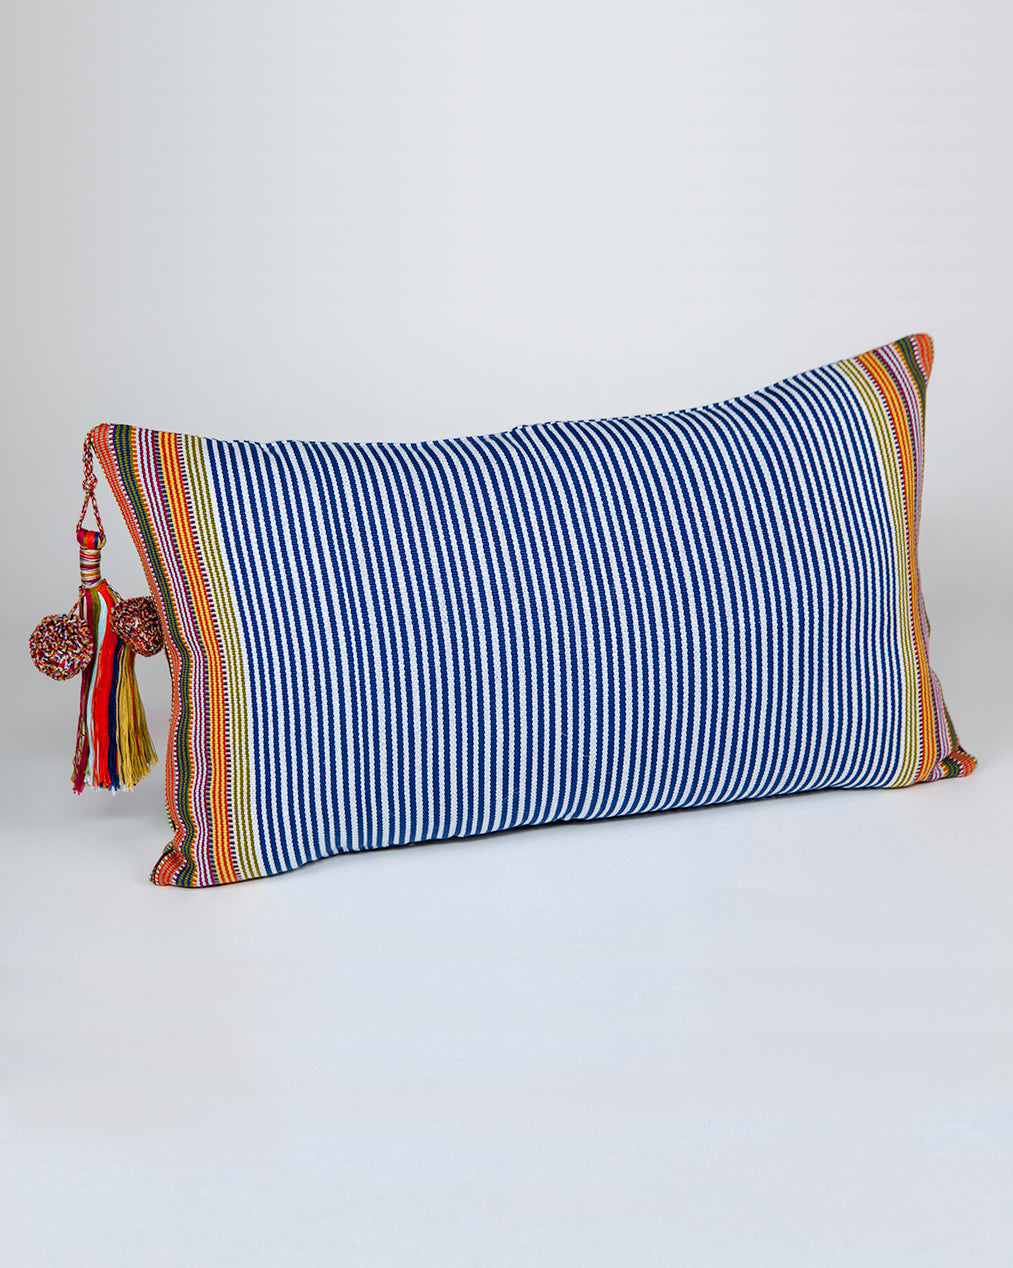 Handwoven cotton pillow with colored tassels blue and orange